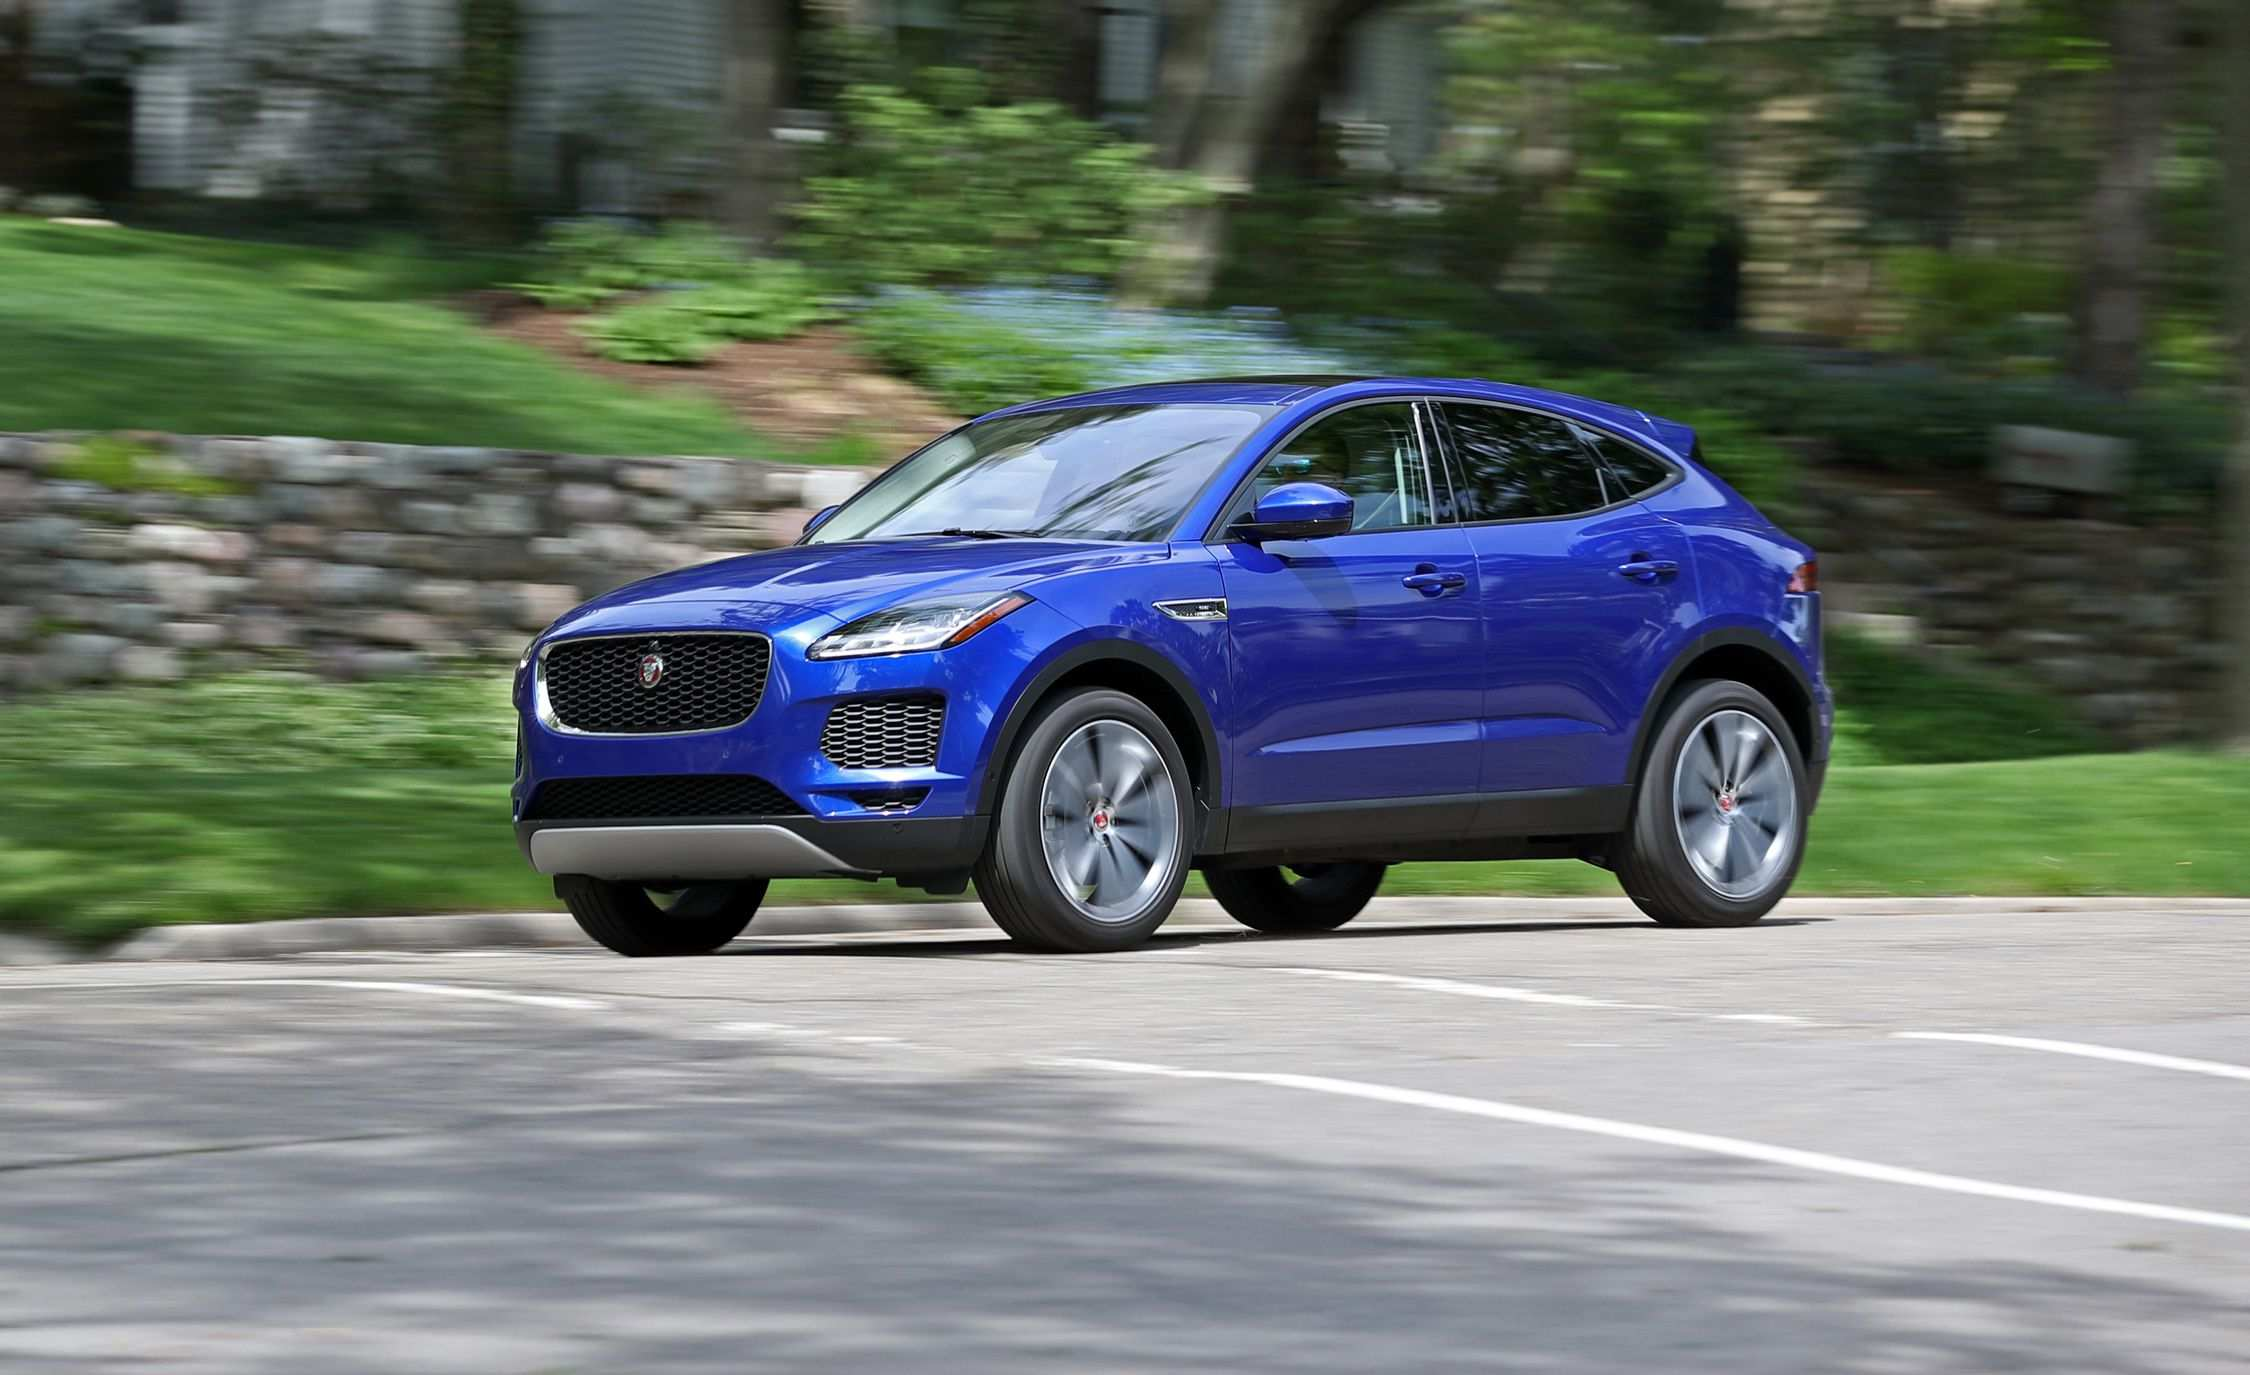 20 Gallery of Jaguar E Pace 2020 New Concept Configurations for Jaguar E Pace 2020 New Concept